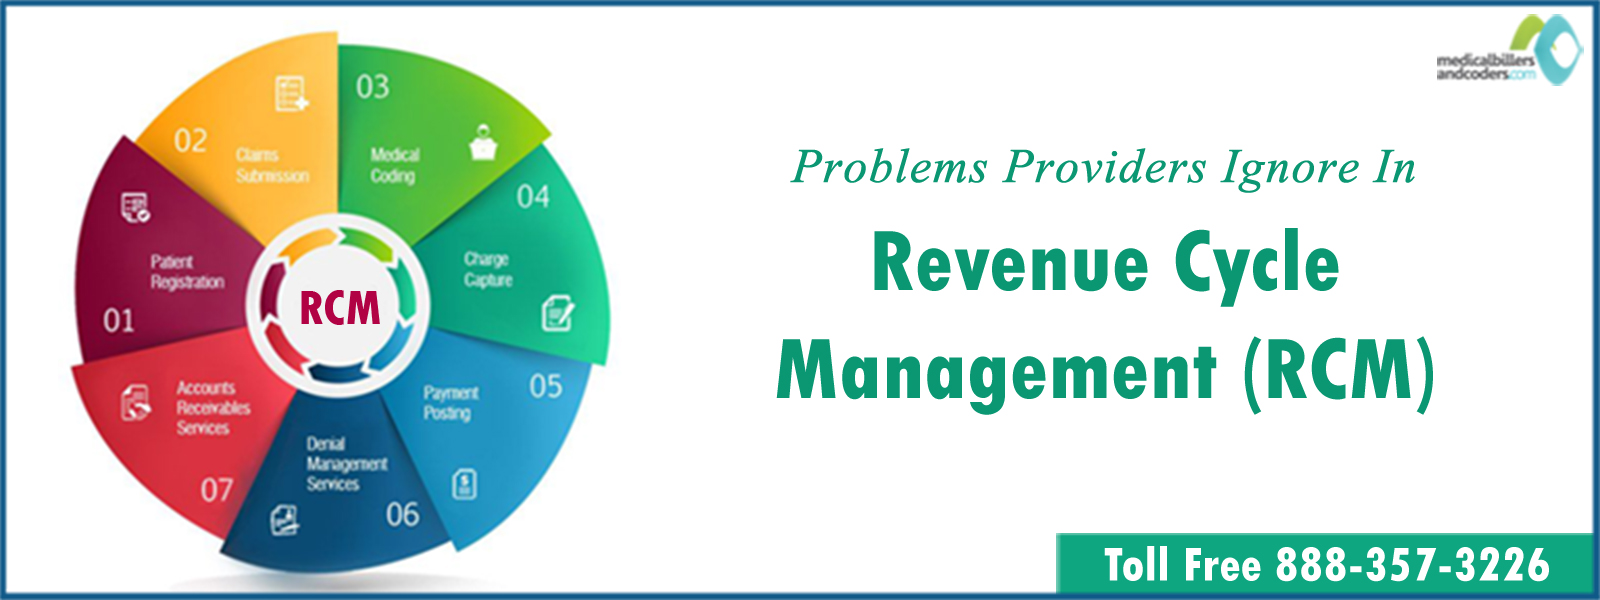 Problems Providers Ignore In Revenue Cycle Management (RCM)